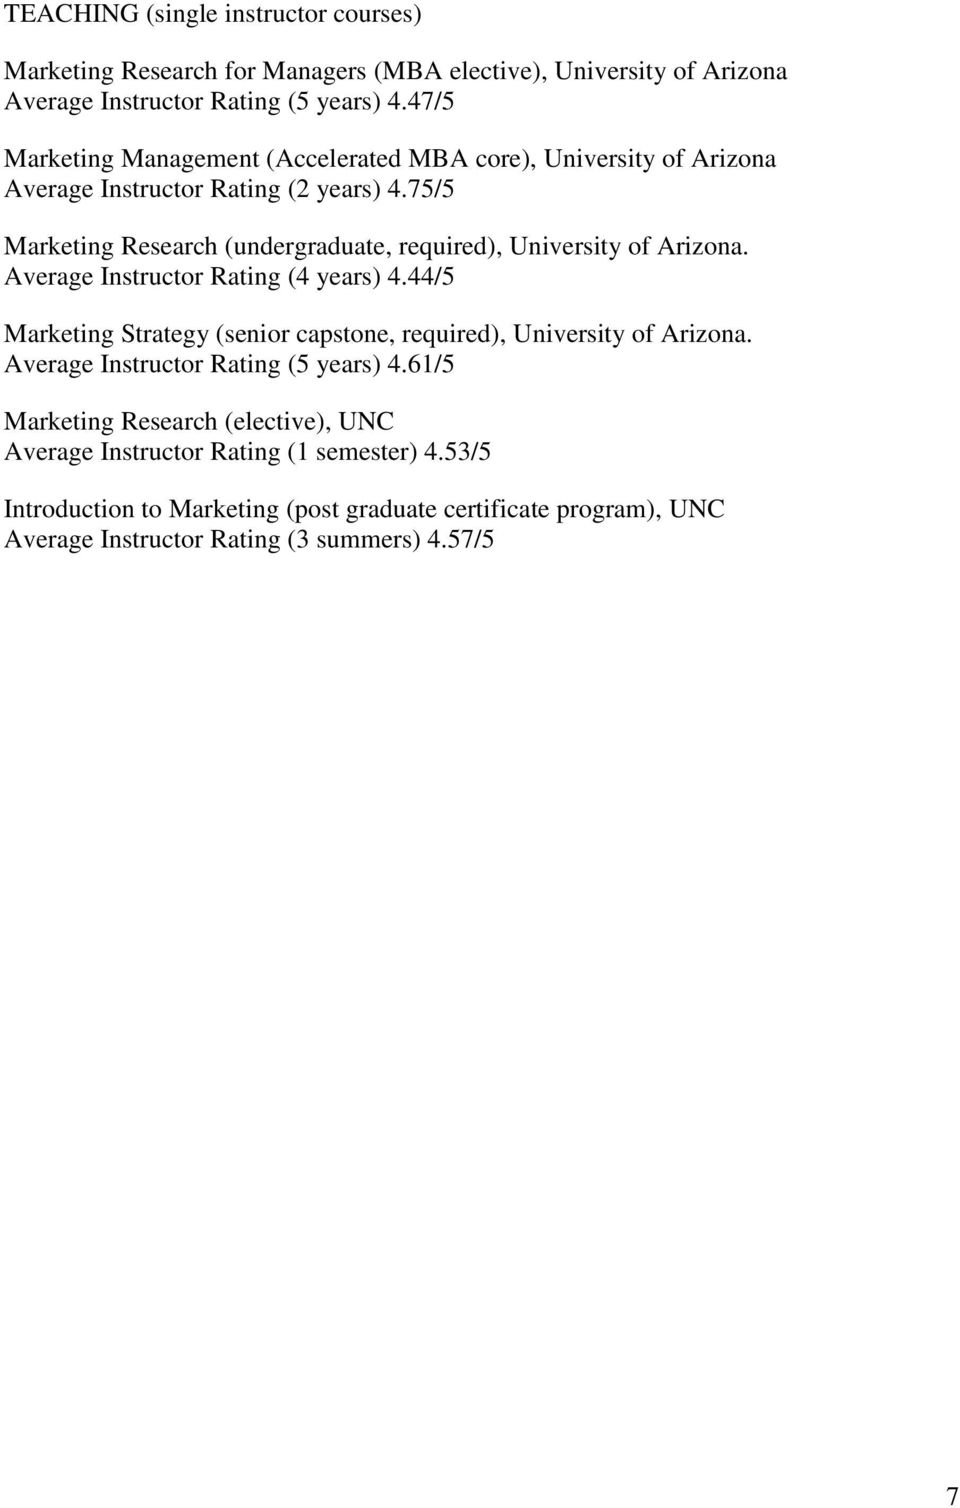 75/5 Marketing Research (undergraduate, required), University of Arizona. Average Instructor Rating (4 years) 4.